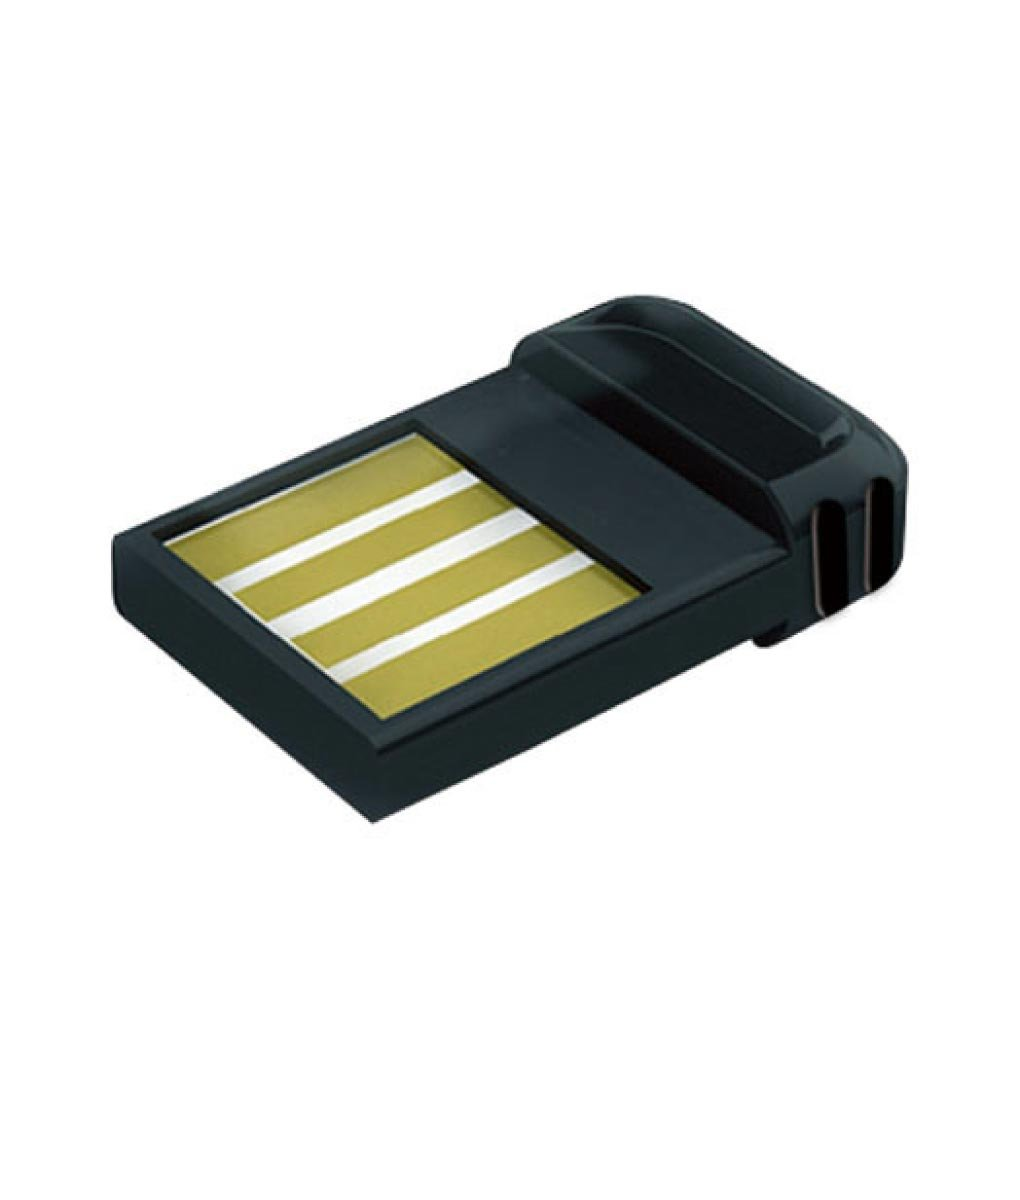 Yealink BT40 USB Dongle Side